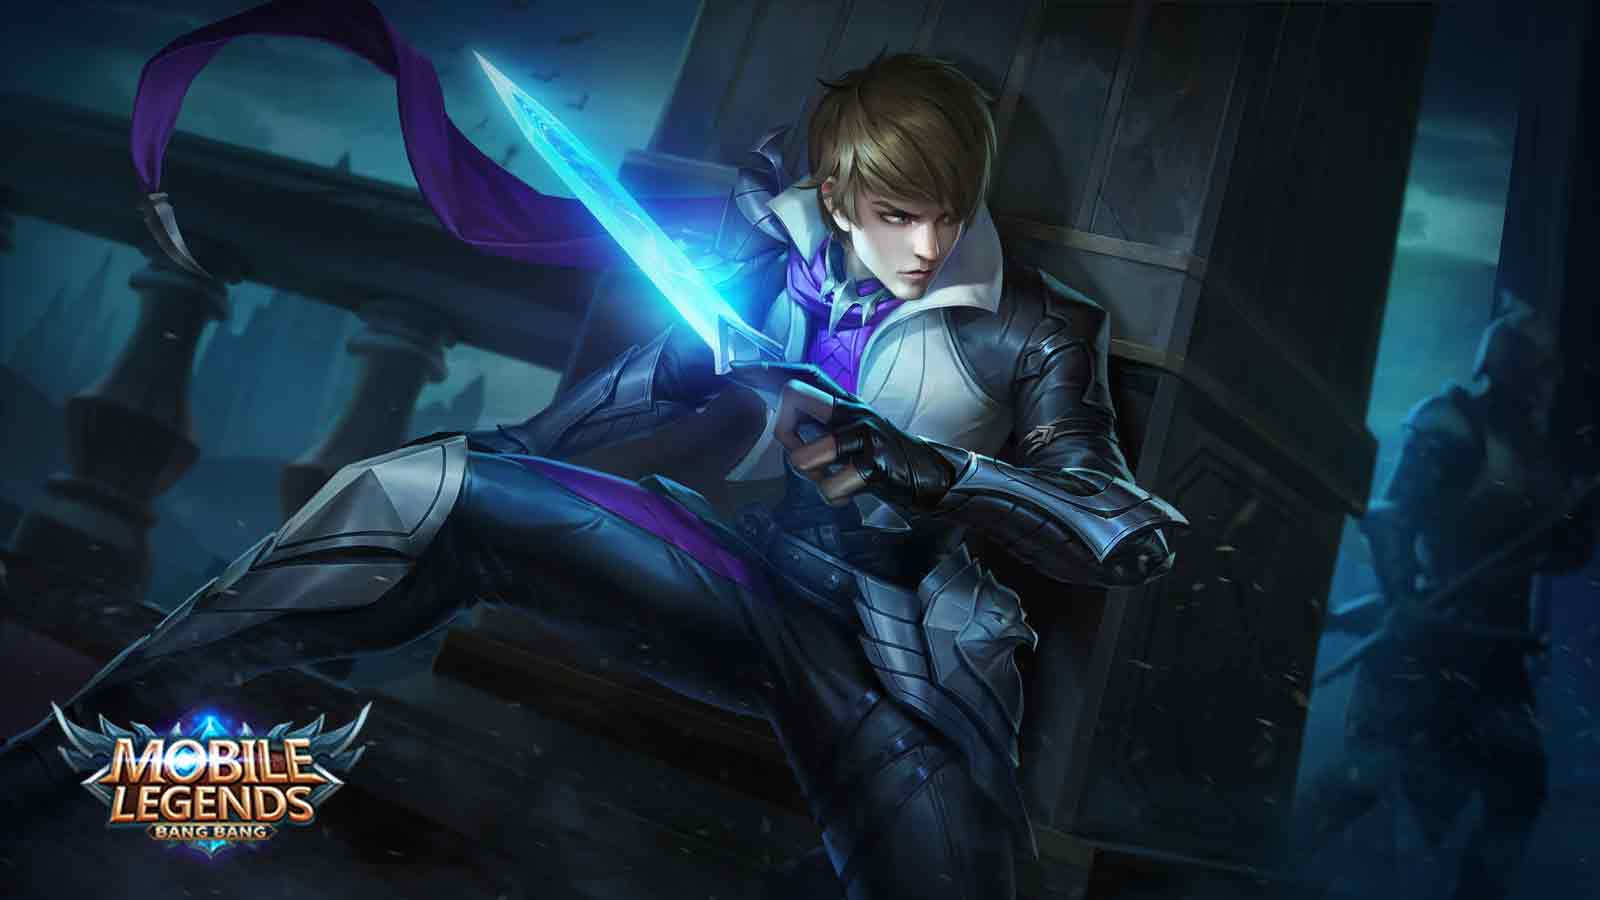 Alucard Child Of The Fall Wallpaper Hd Gusion Gossen Mobile Legends Wallpapers